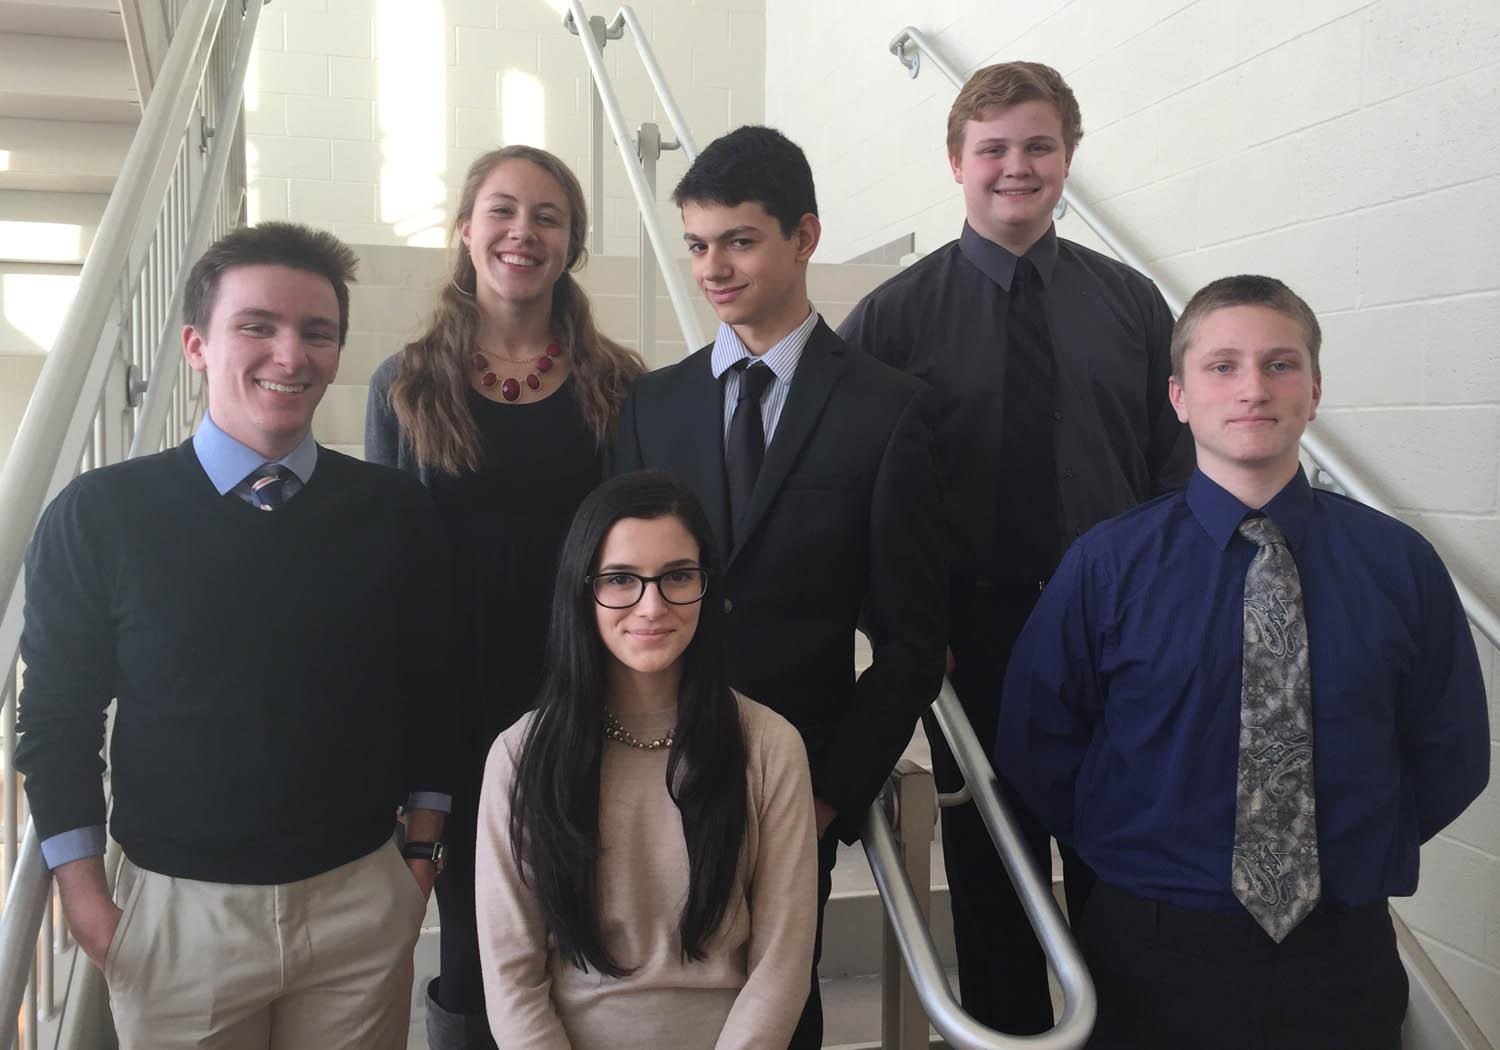 Mock Trial before heading out to the Frederick County Courthouse Starting from the top left: Maria Pellicier, Hugh Norko,  and Garrett Gillespie.  From the bottom left: Ryan Stark, Sofia Schuller, and Patrick Conboy.